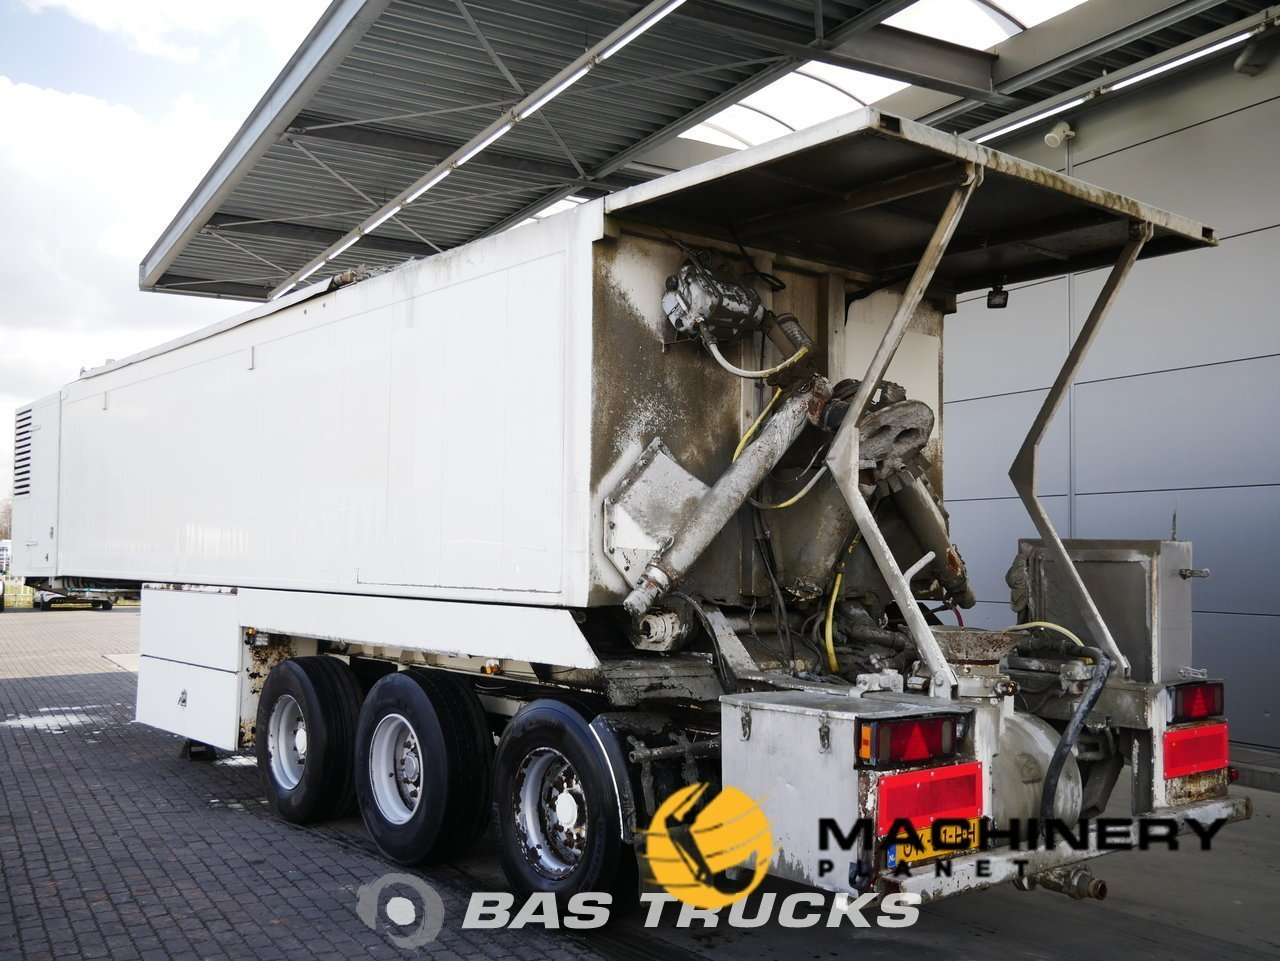 Used-Semi-trailer-EKW-Screedpump--Mortar--Estrich--Concrete--Beton--MC-Machines-Axels-2001_128621_1-1554198901969_5ca33175ec935-1.jpg